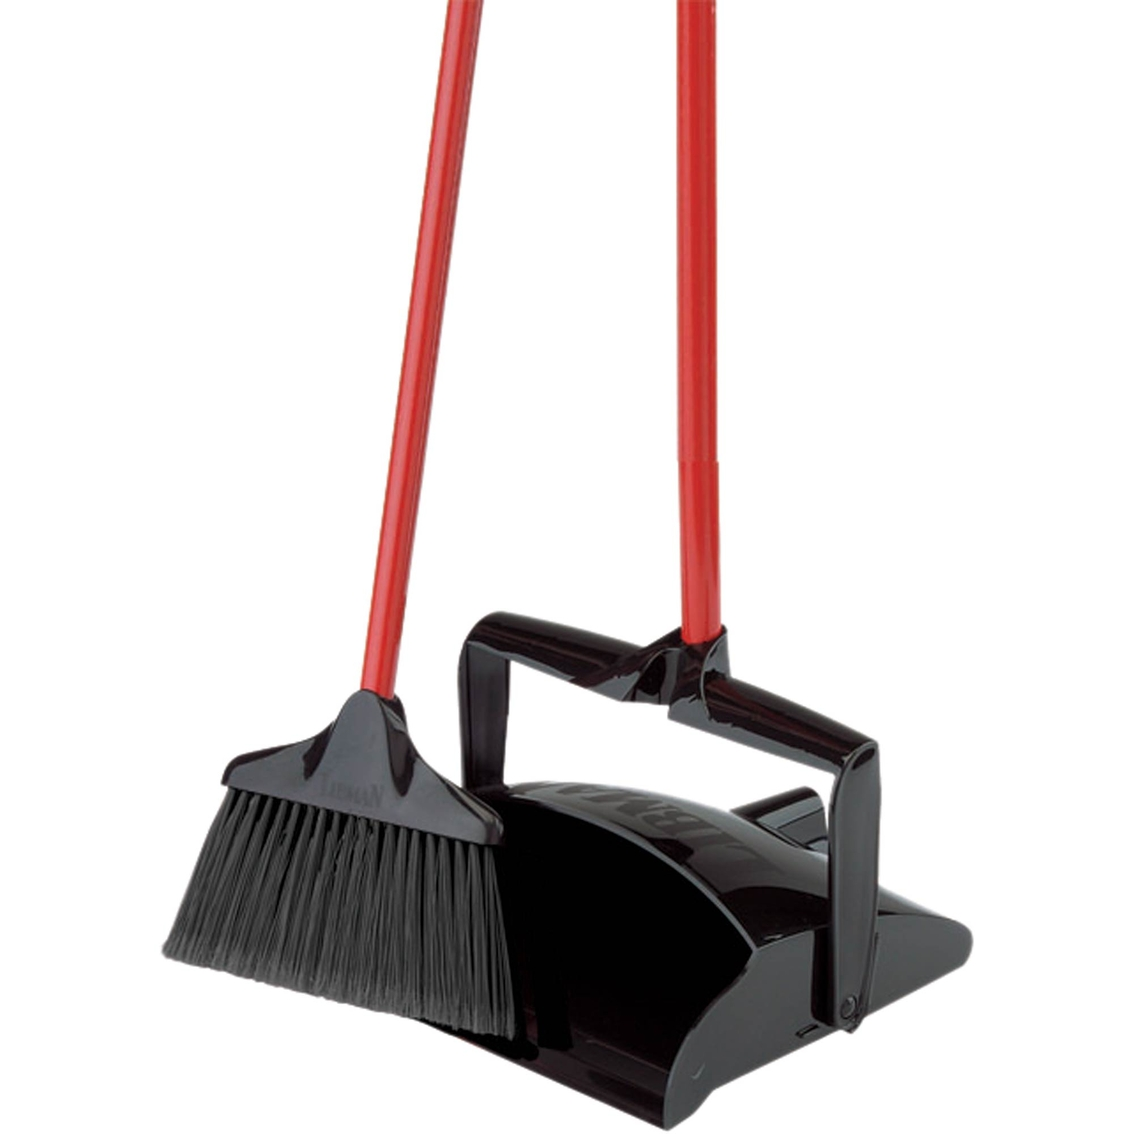 Libman Lobby Broom And Dust Pan Garage Cleaning Patio Garden Garage Shop The Exchange